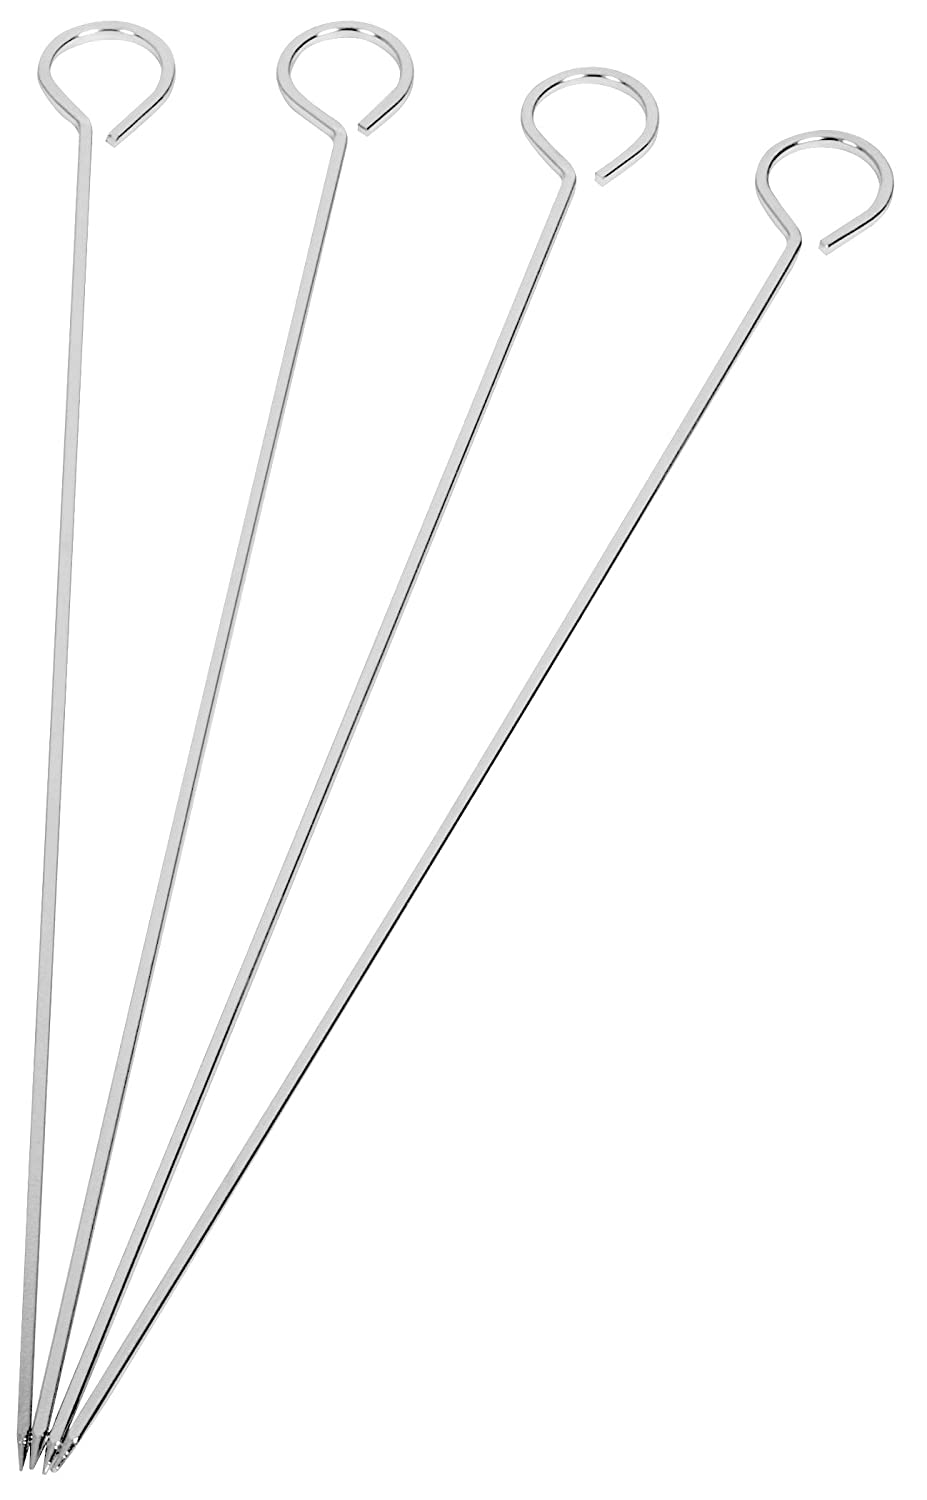 HIC Harold Import Reusable Barbecue and Grilling Shish Kabob Skewers with Ring-Handle Top, 15-Inches Long, Set of 4 Harold Import Company Inc. 43179